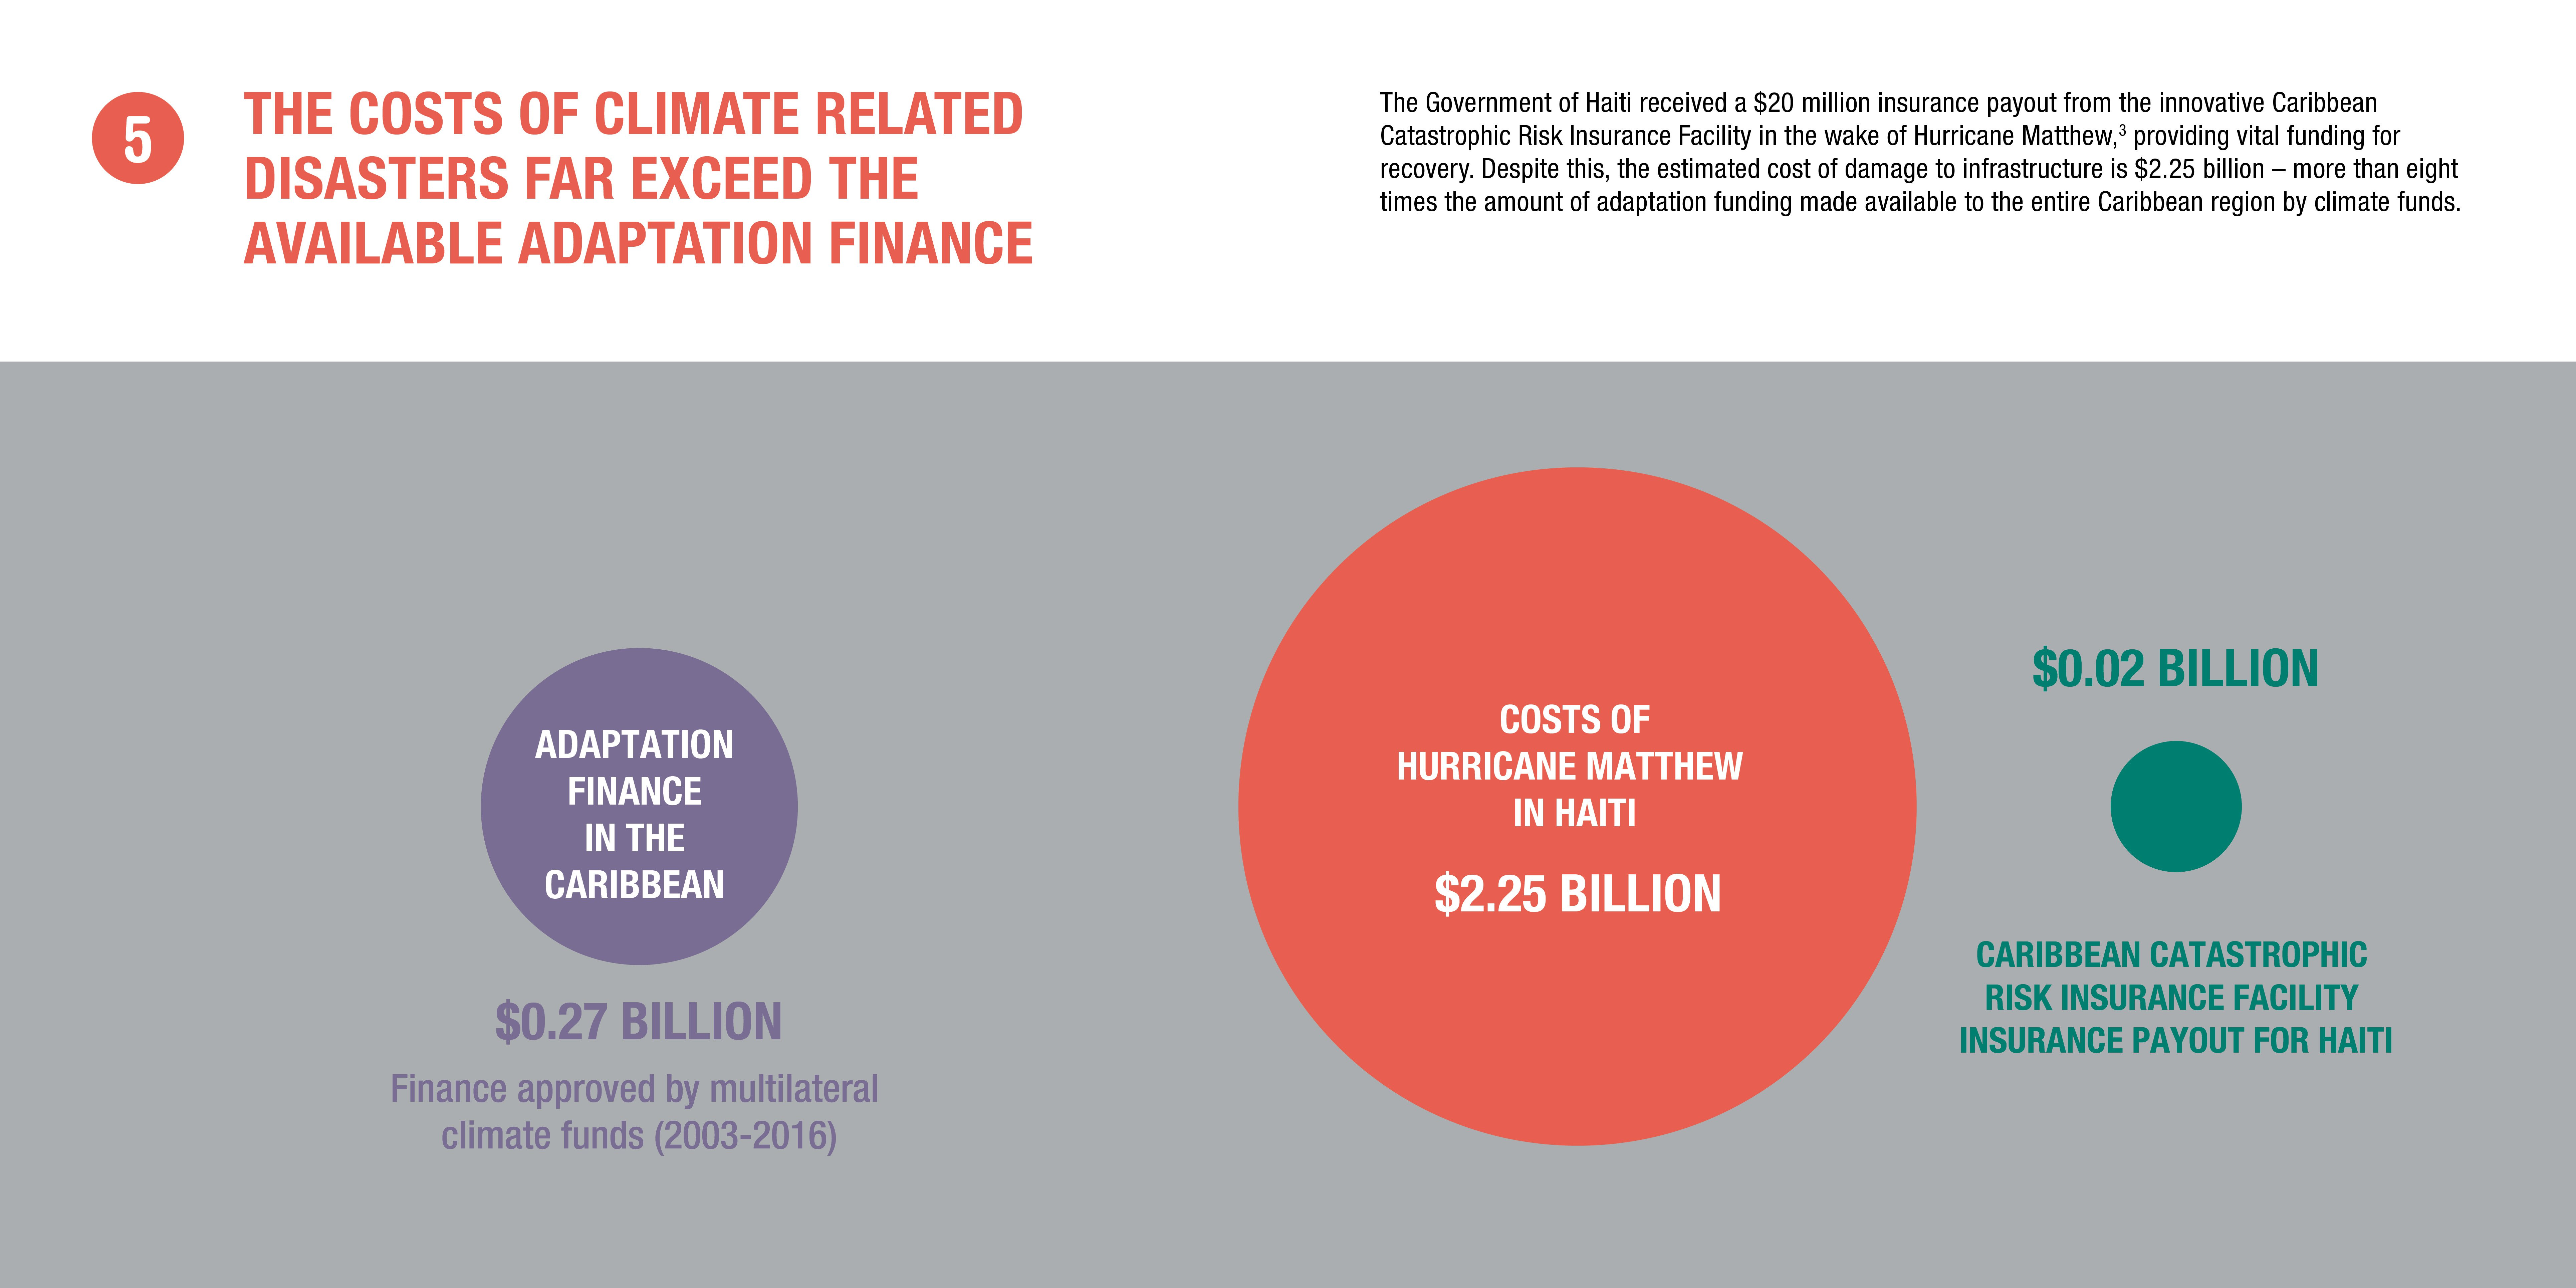 Infographic: the costs of climate related disasters far exceed the available finance